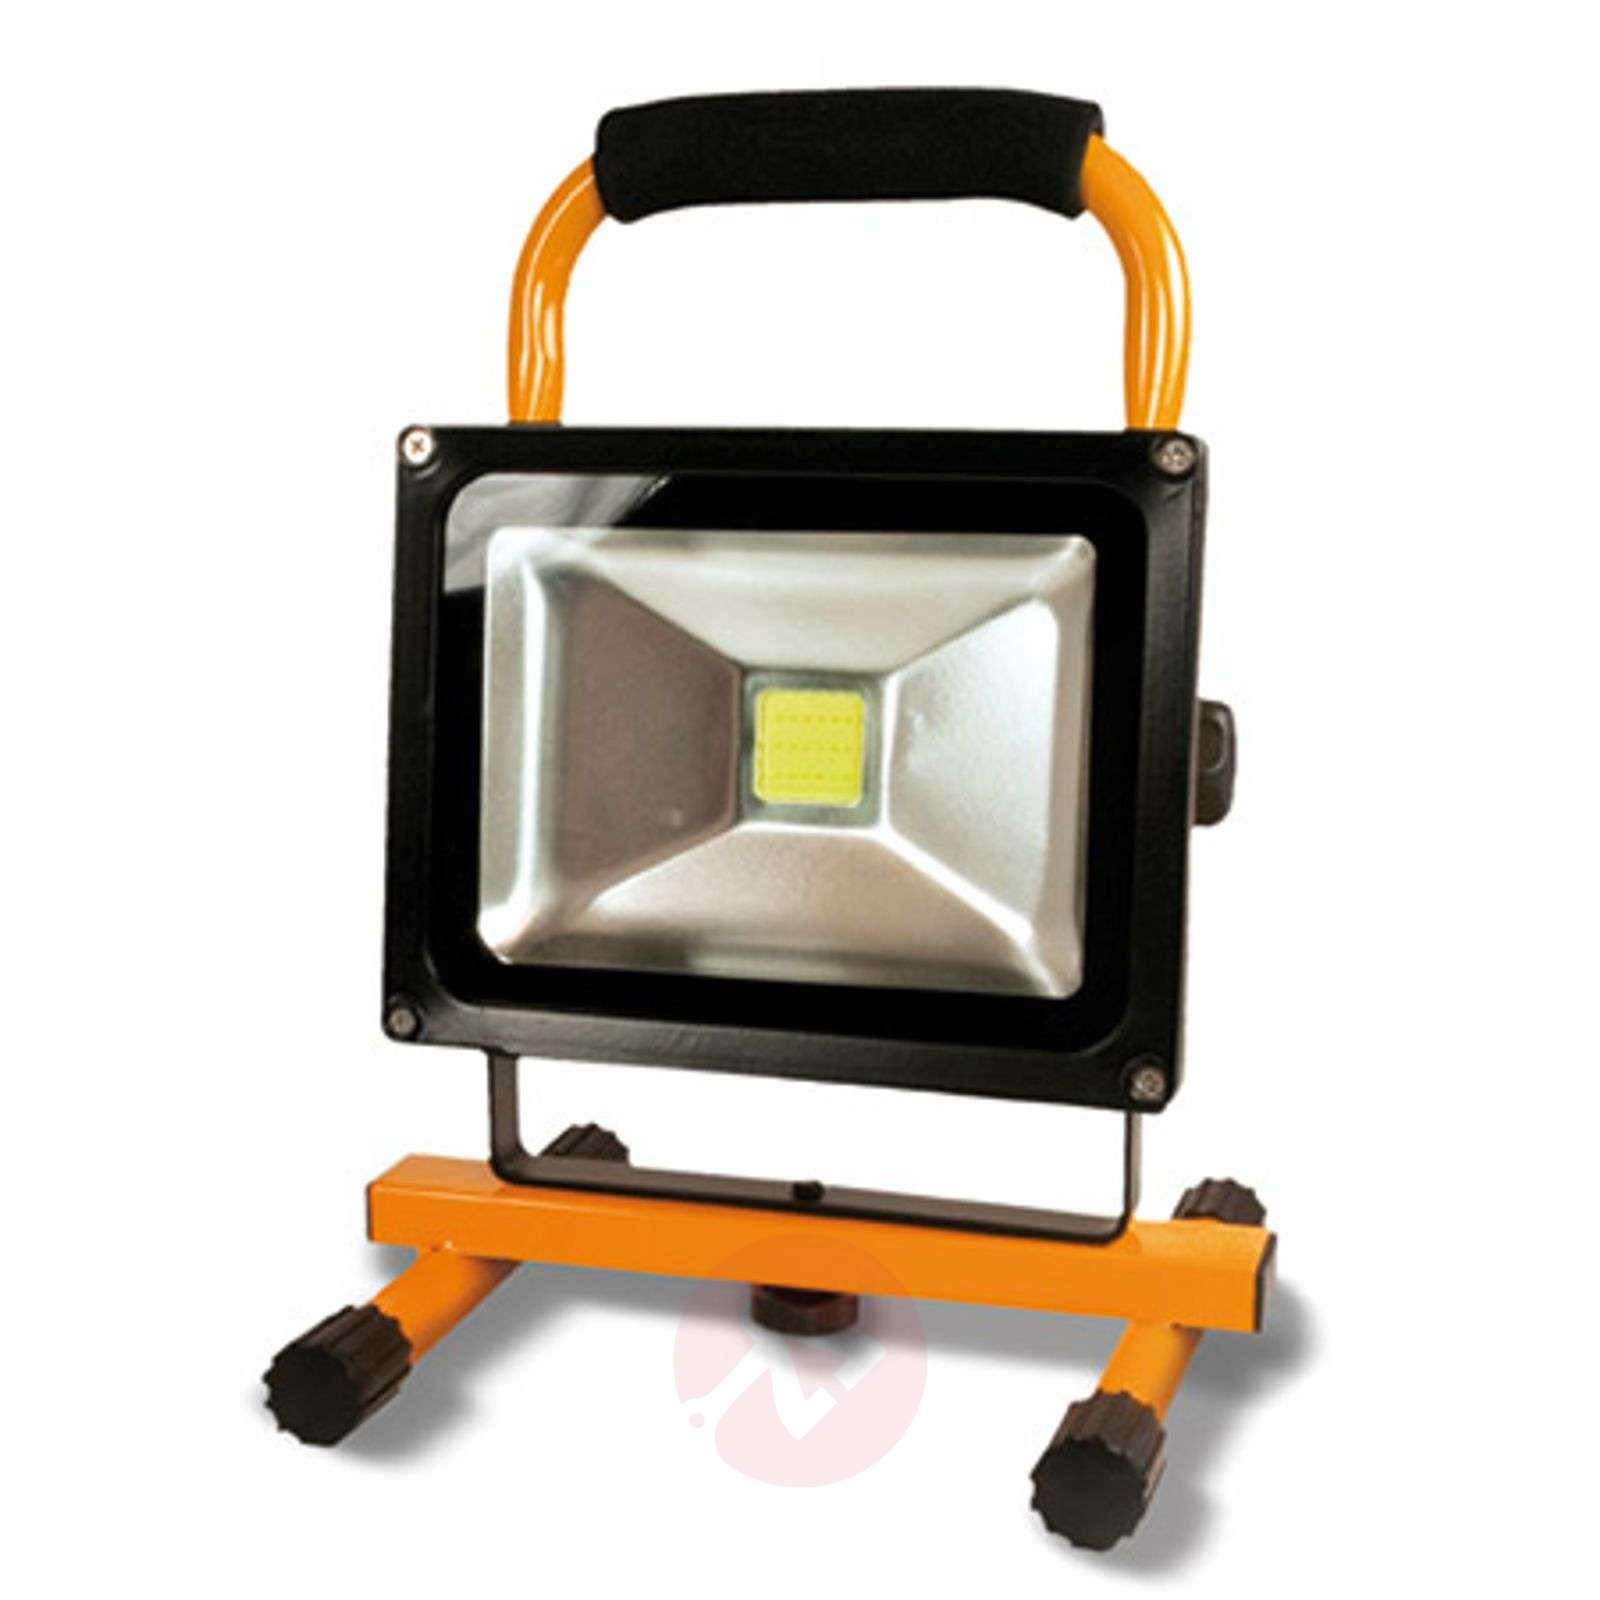 w perfect flood construction com with superonlinesaver x light lights good additional led